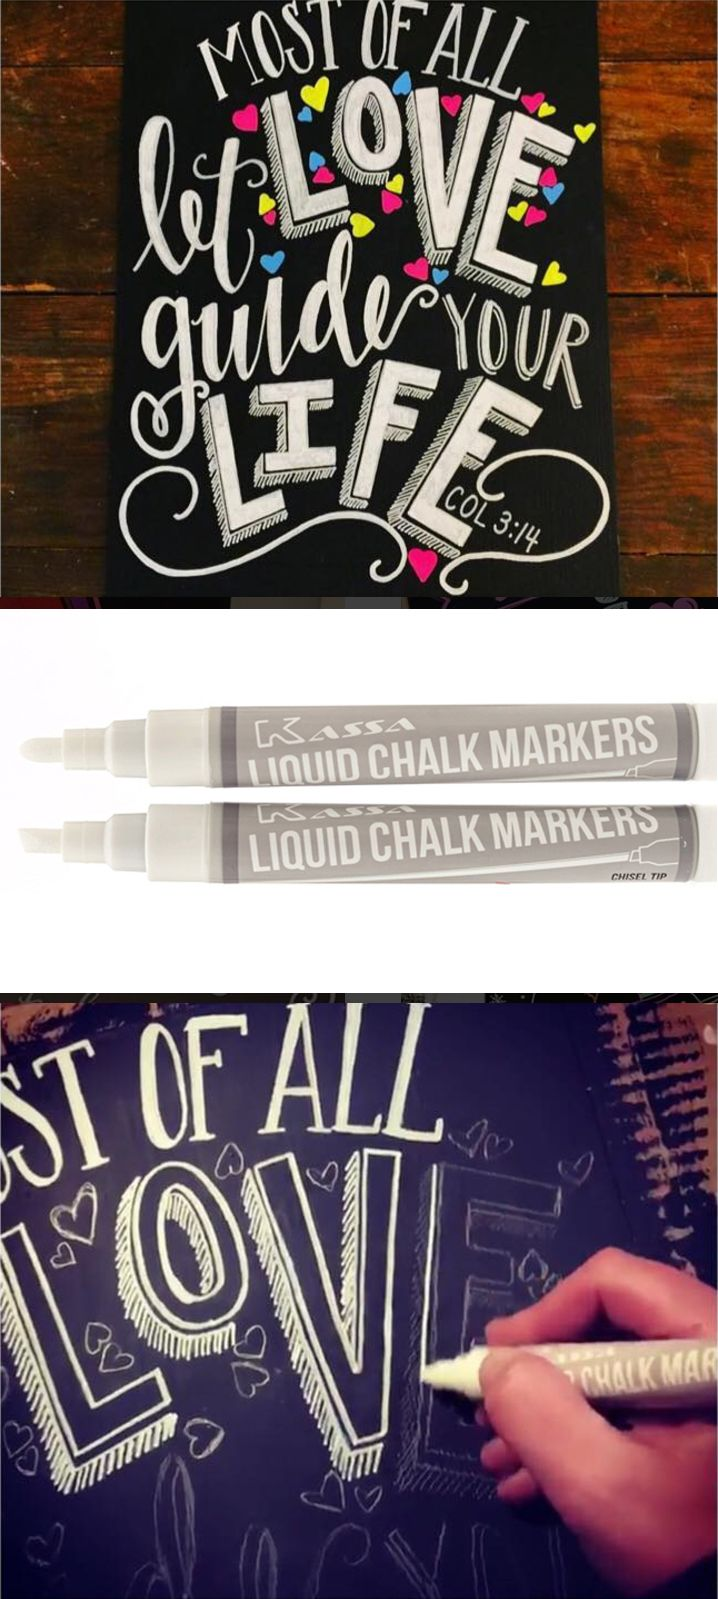 Use Liquid Chalk Markers to trace over regular chalk to create bright colors on a chalkboard that pops